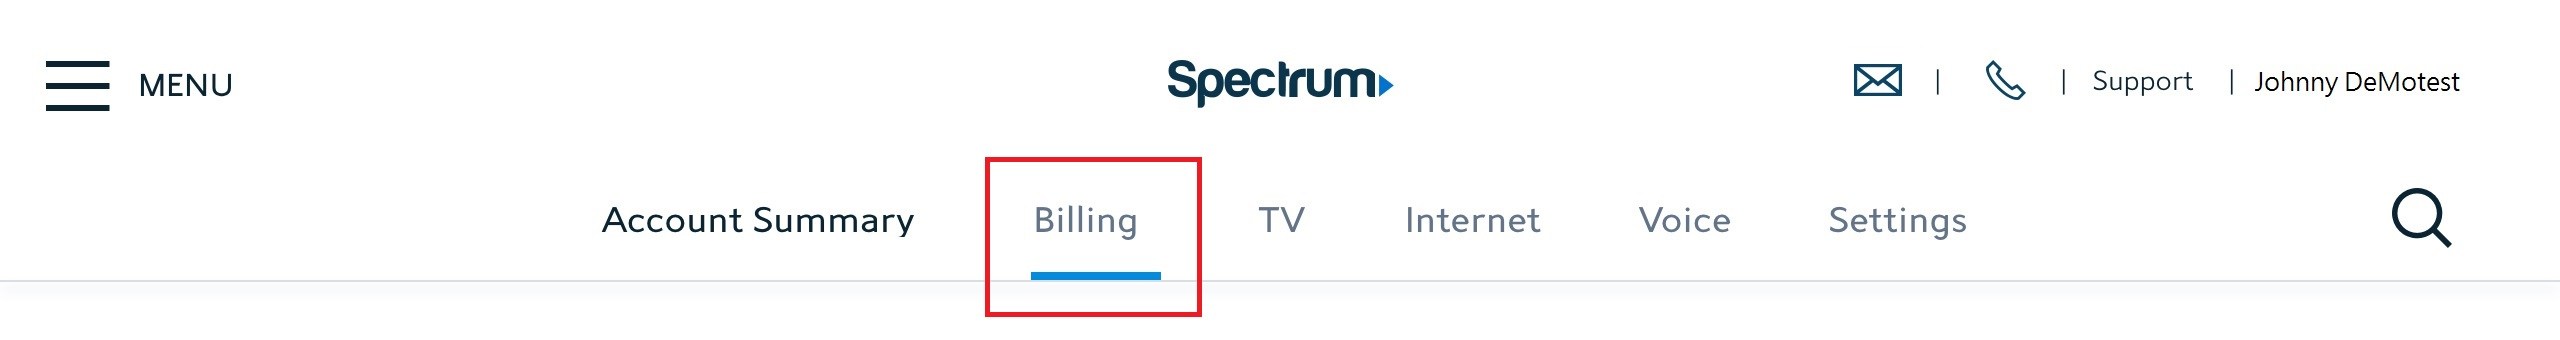 billing option in the Spectrum.new header